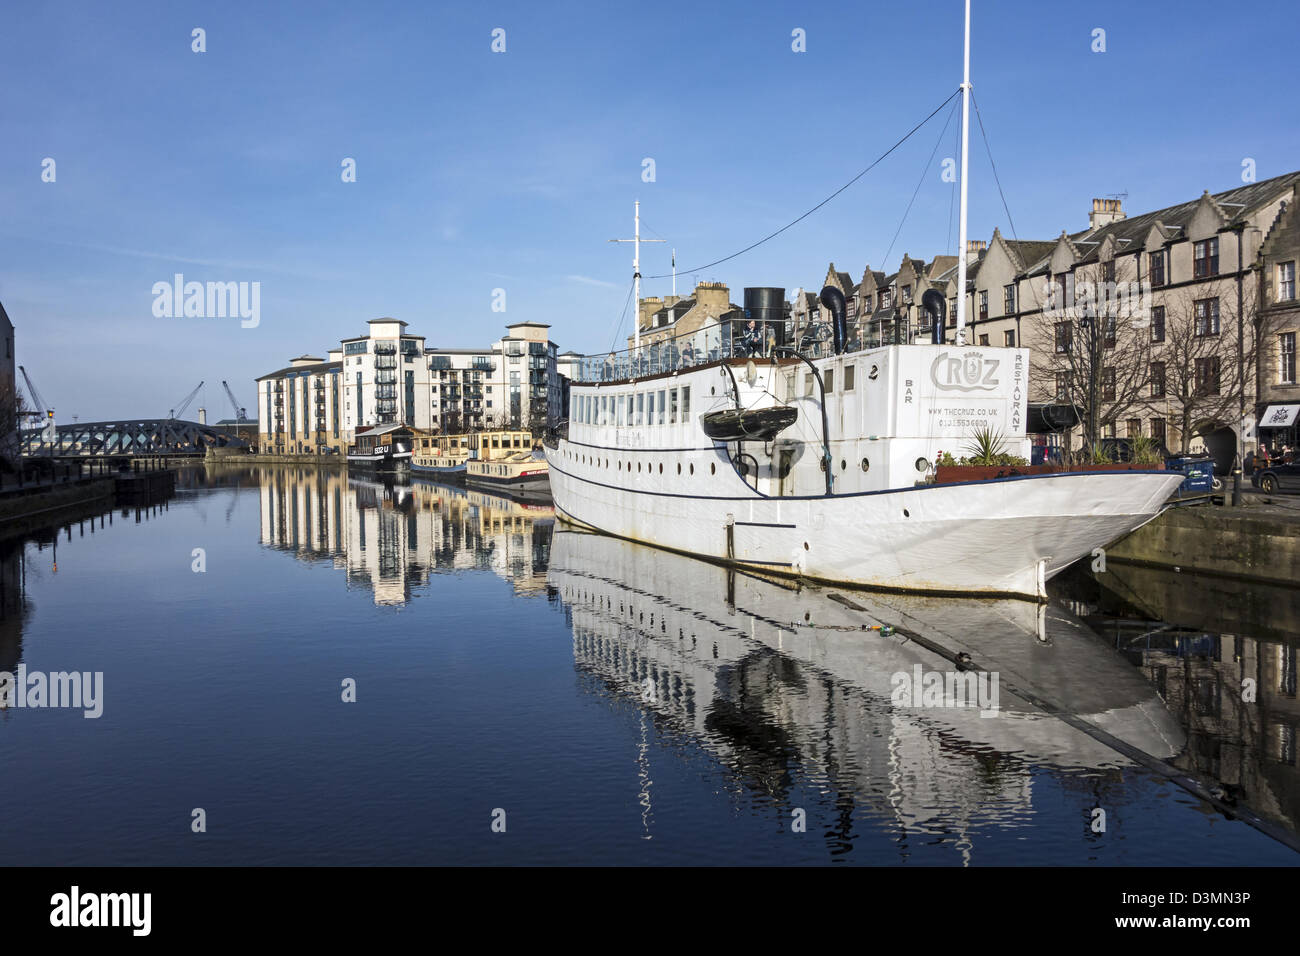 Ristorante de Niro ship (The Cruz) moored at The Shore in Queens Dock Leith Harbour Edinburgh with guests enjoying - Stock Image